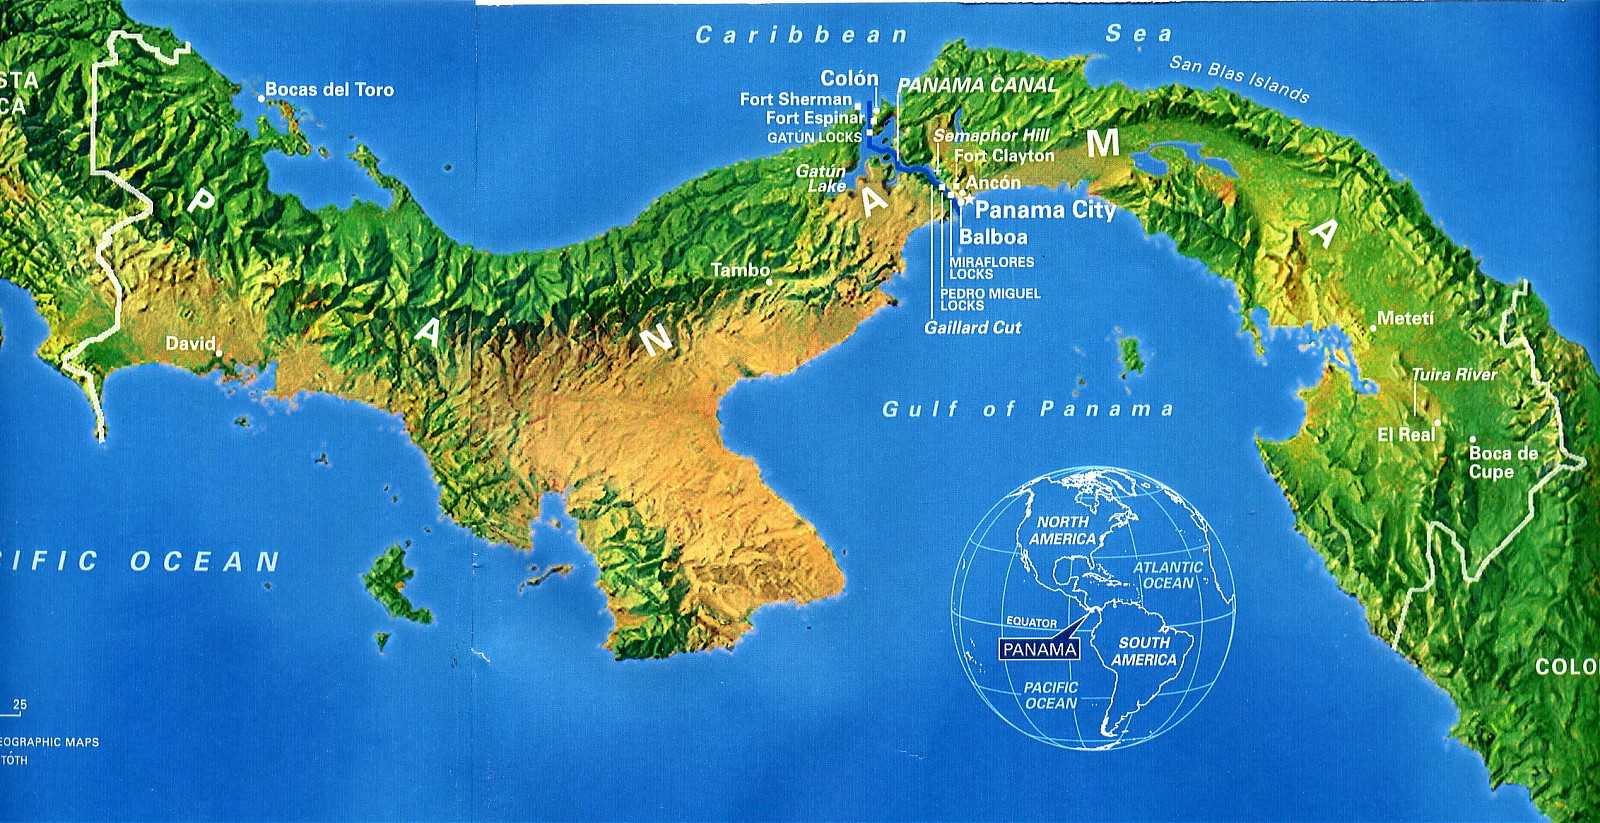 Click image for larger version  Name:panamacanal.jpg Views:100 Size:553.2 KB ID:4806